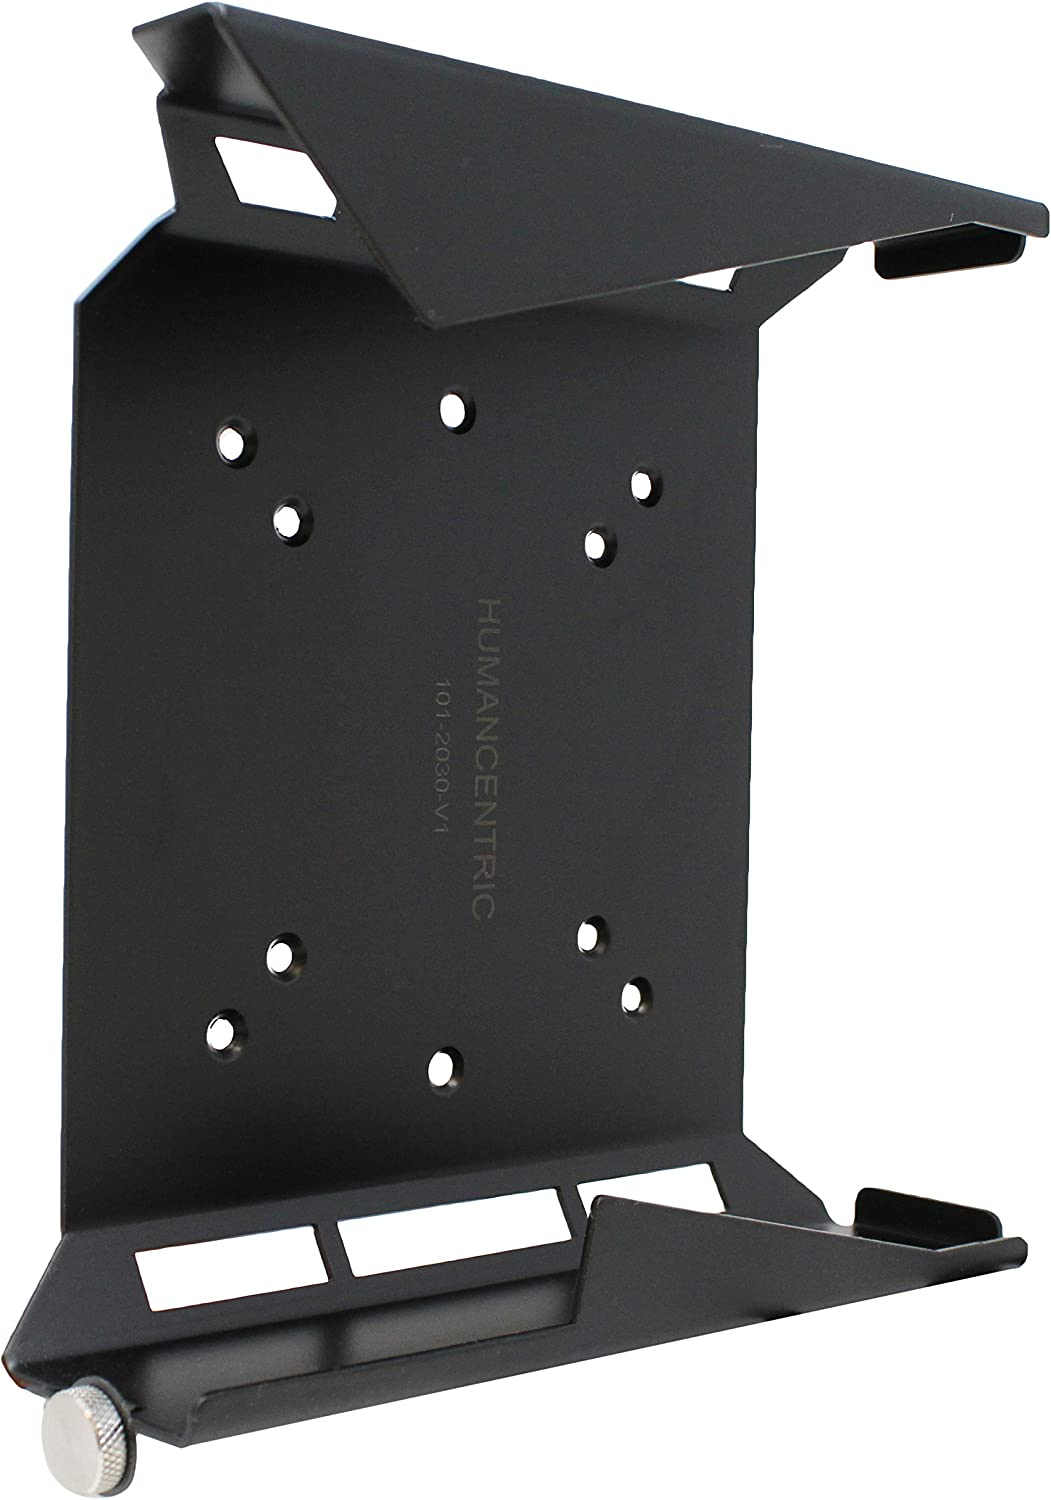 HumanCentric Mount for Alienware Game Consoles Alpha and Steam | Mounts on the wall or on the back of the TV